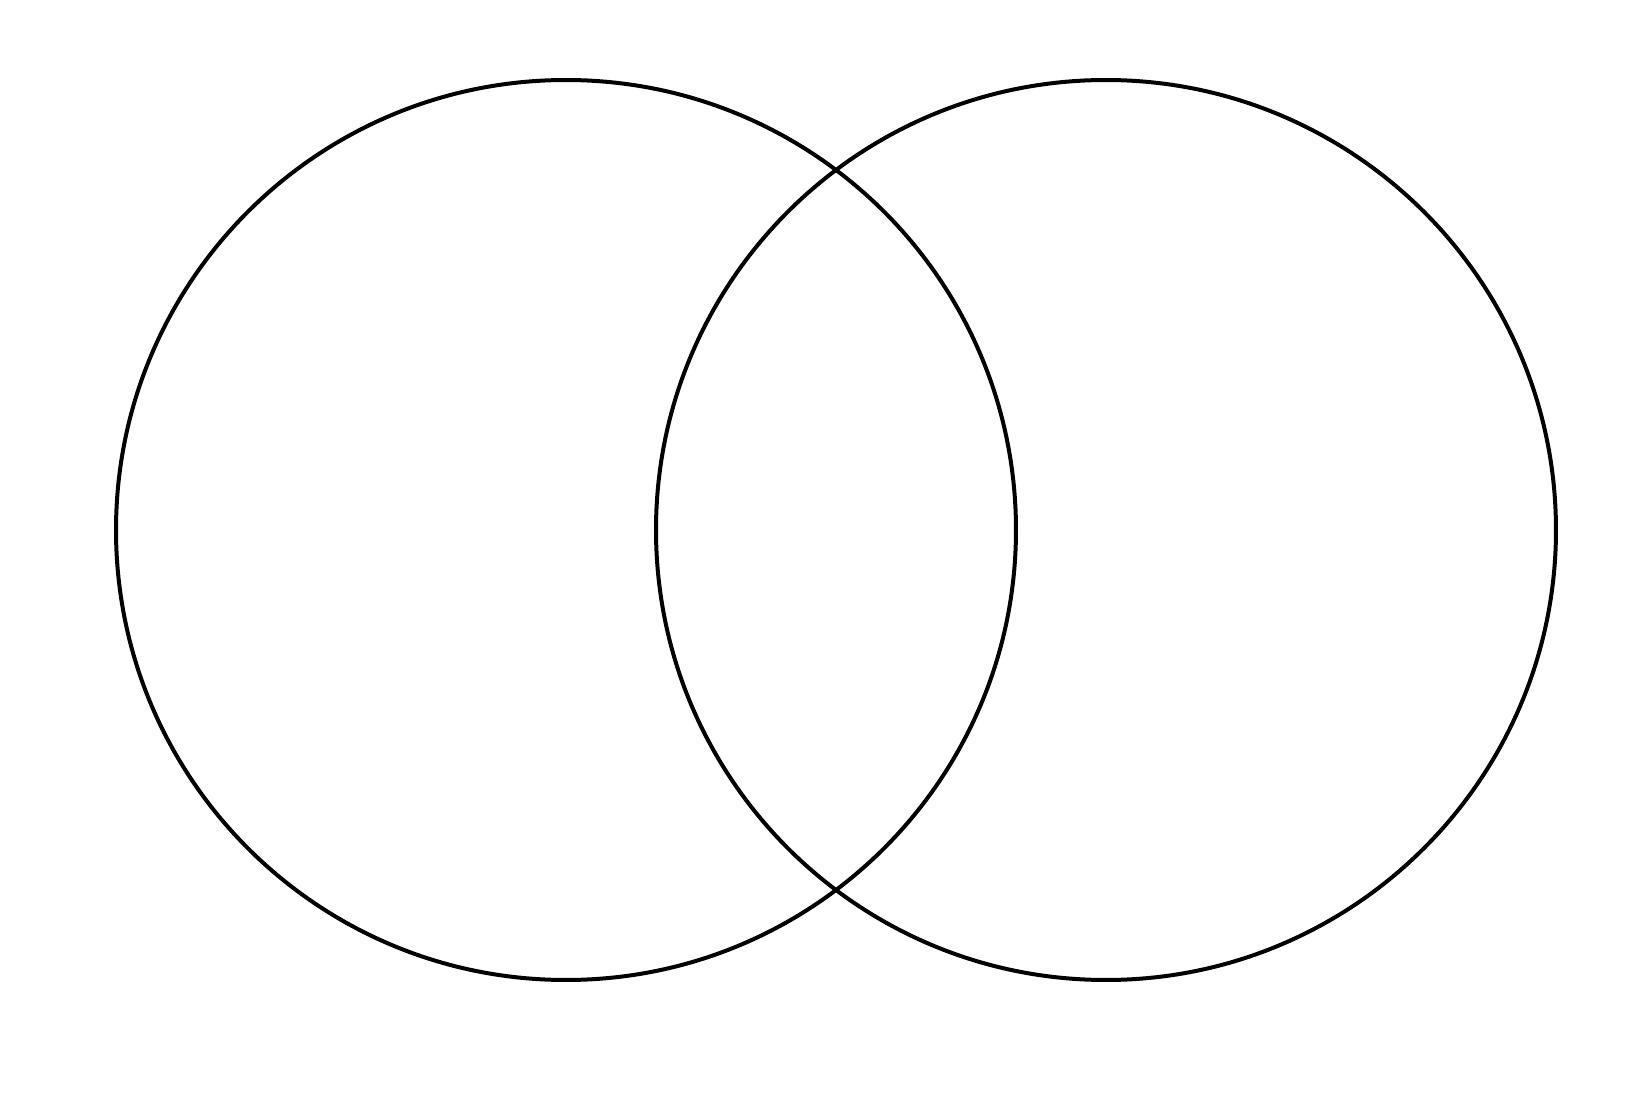 photograph about Printable Venn Diagrams With Lines identify Venn Diagram Manufacturer Lucidchart